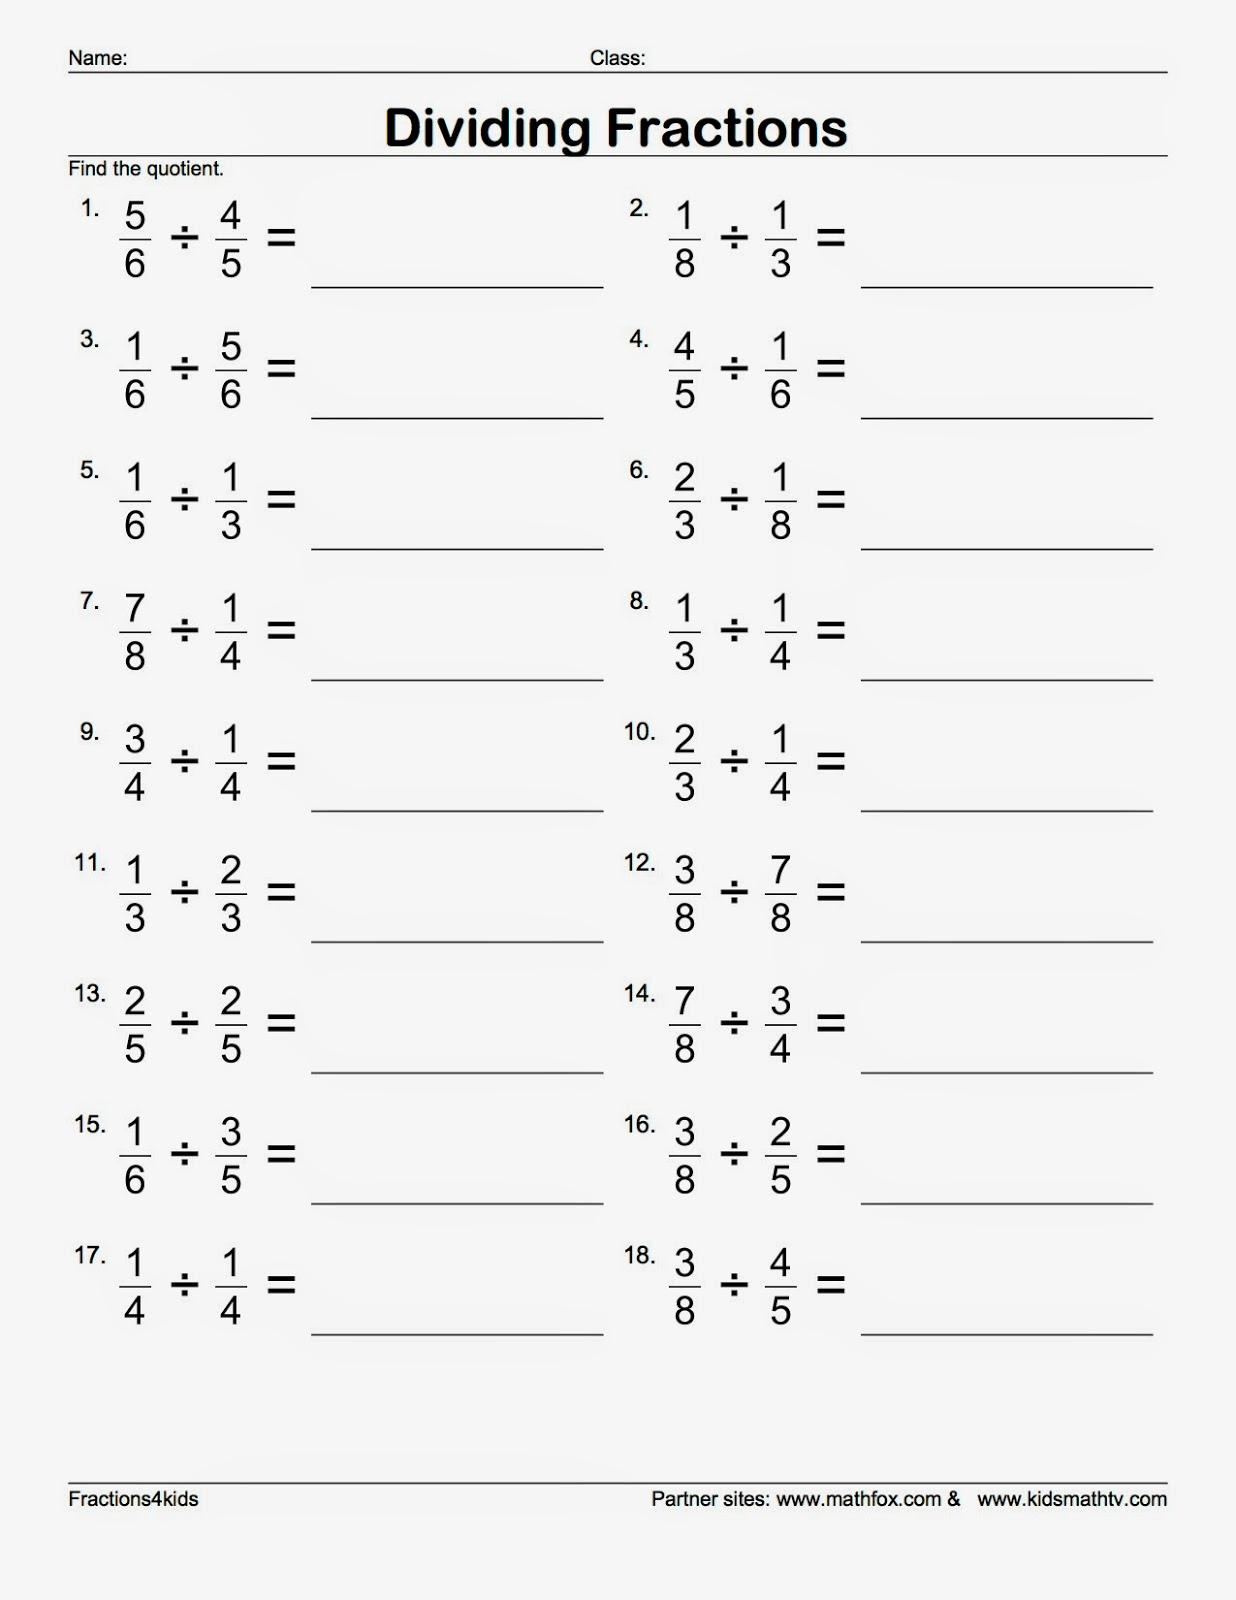 worksheet Fun Math Worksheets For Middle School delta scape do you have a boring worksheet that want to make more interesting